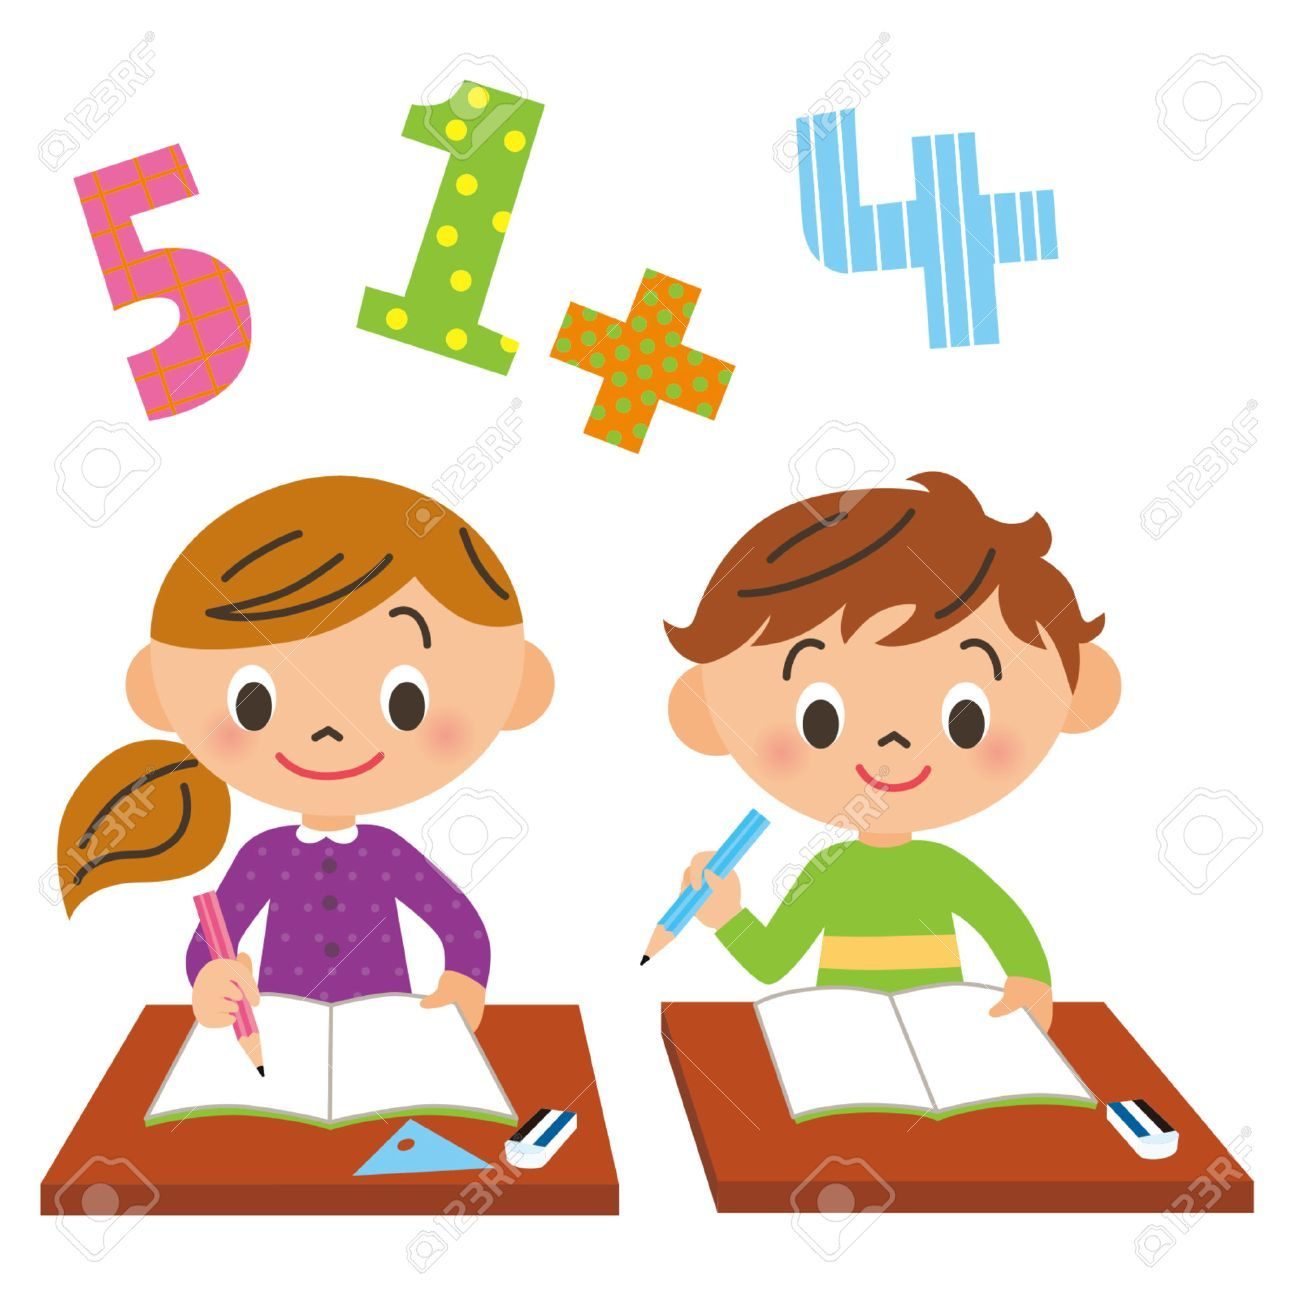 Clipart child studying picture library stock Child studying at school clipart » Clipart Portal picture library stock